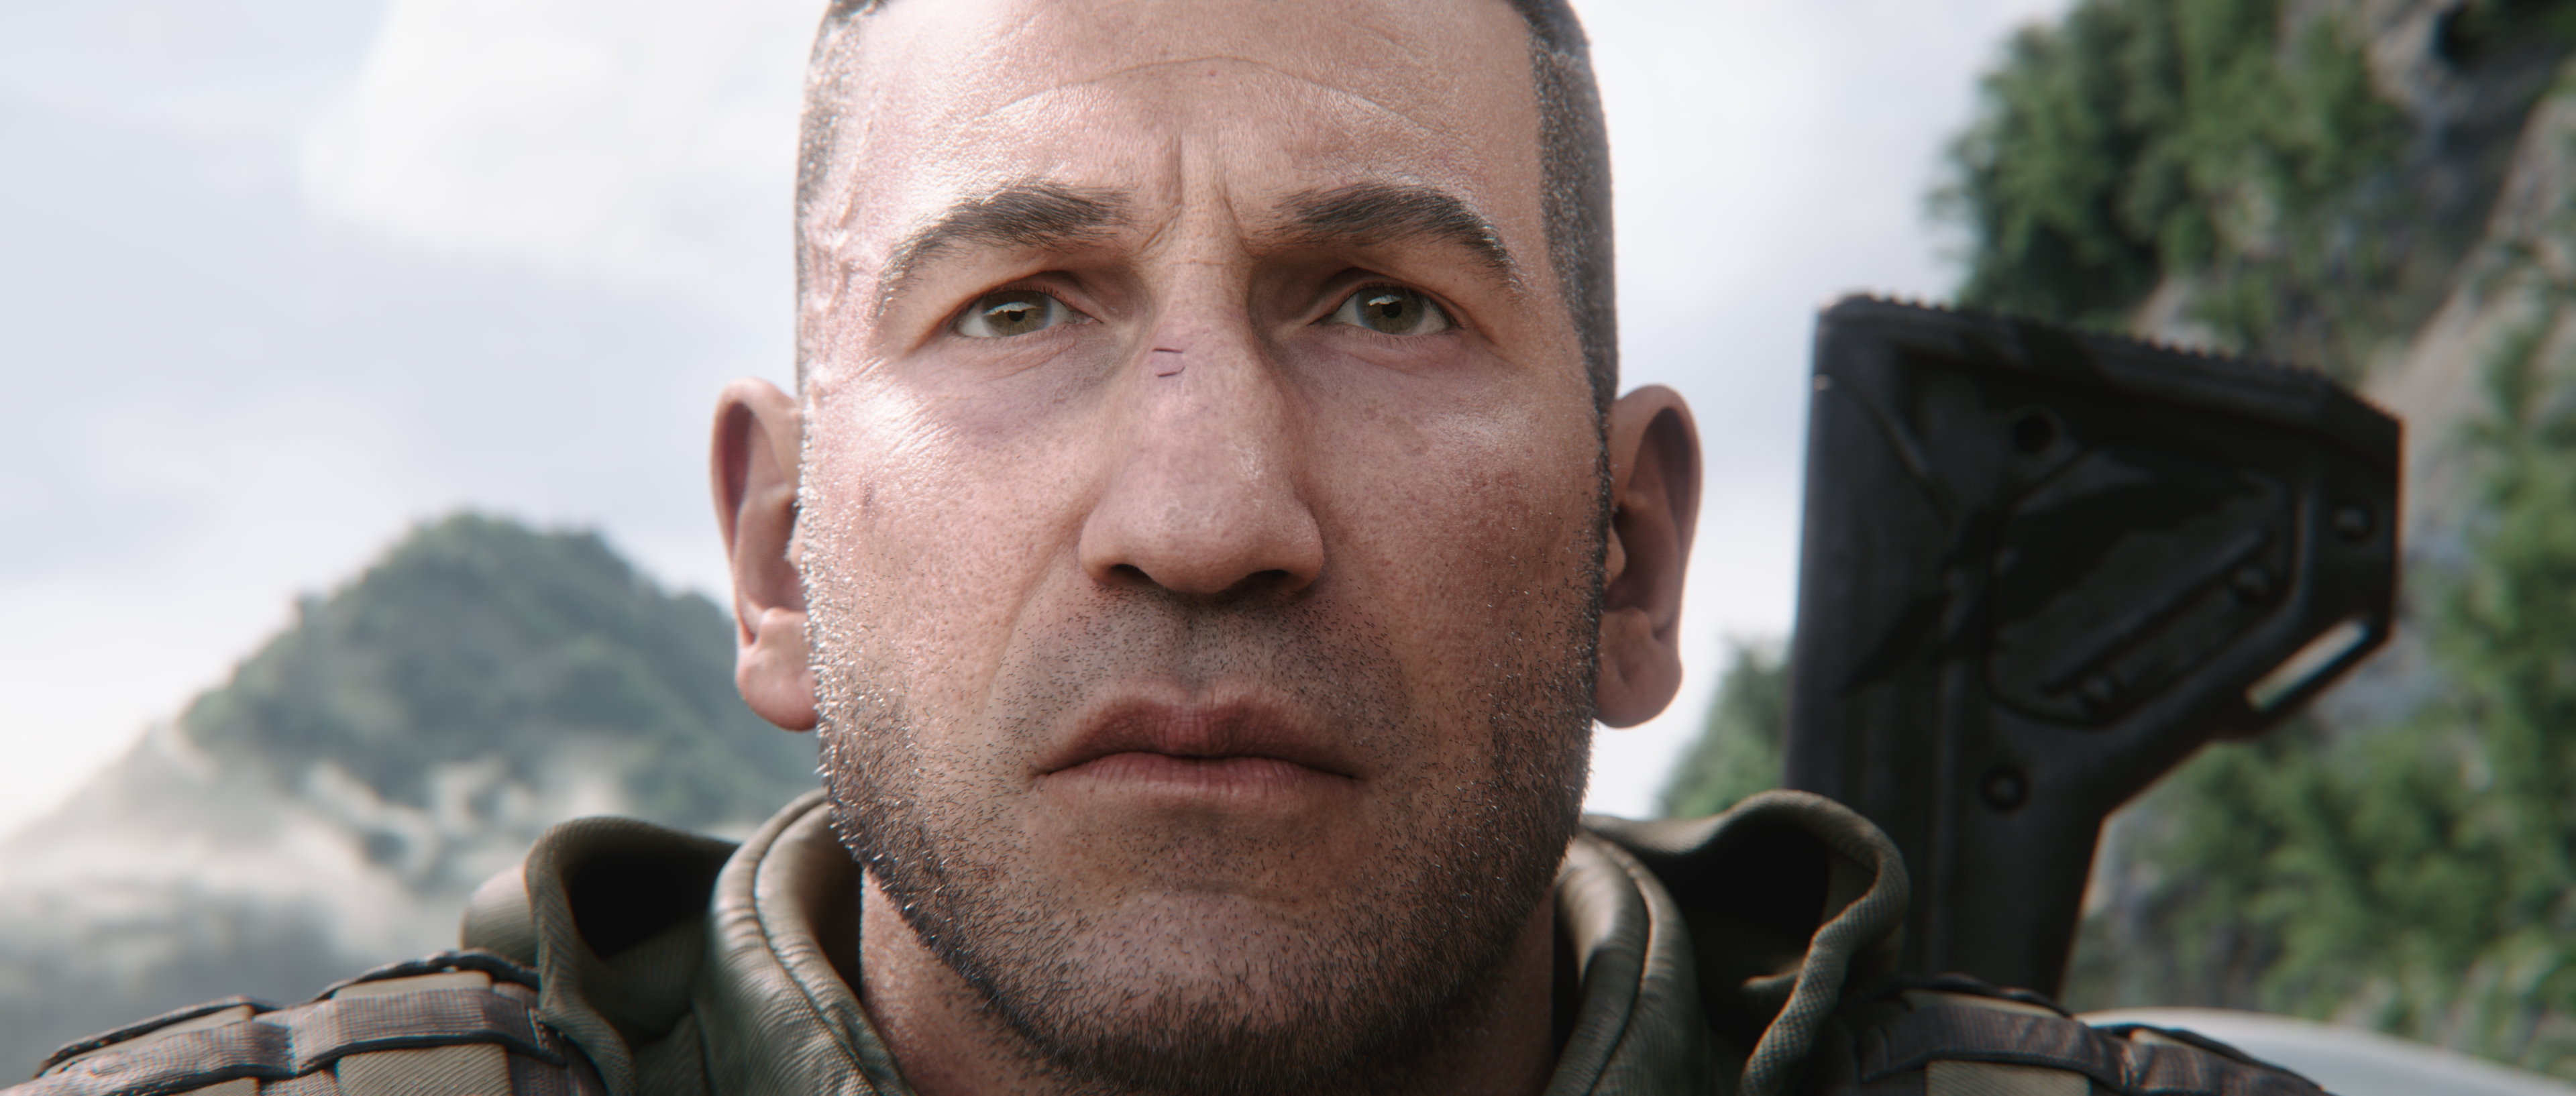 Ghost Recon Breakpoint Developer Explains Why Jon Bernthal Was Cast as the Villain